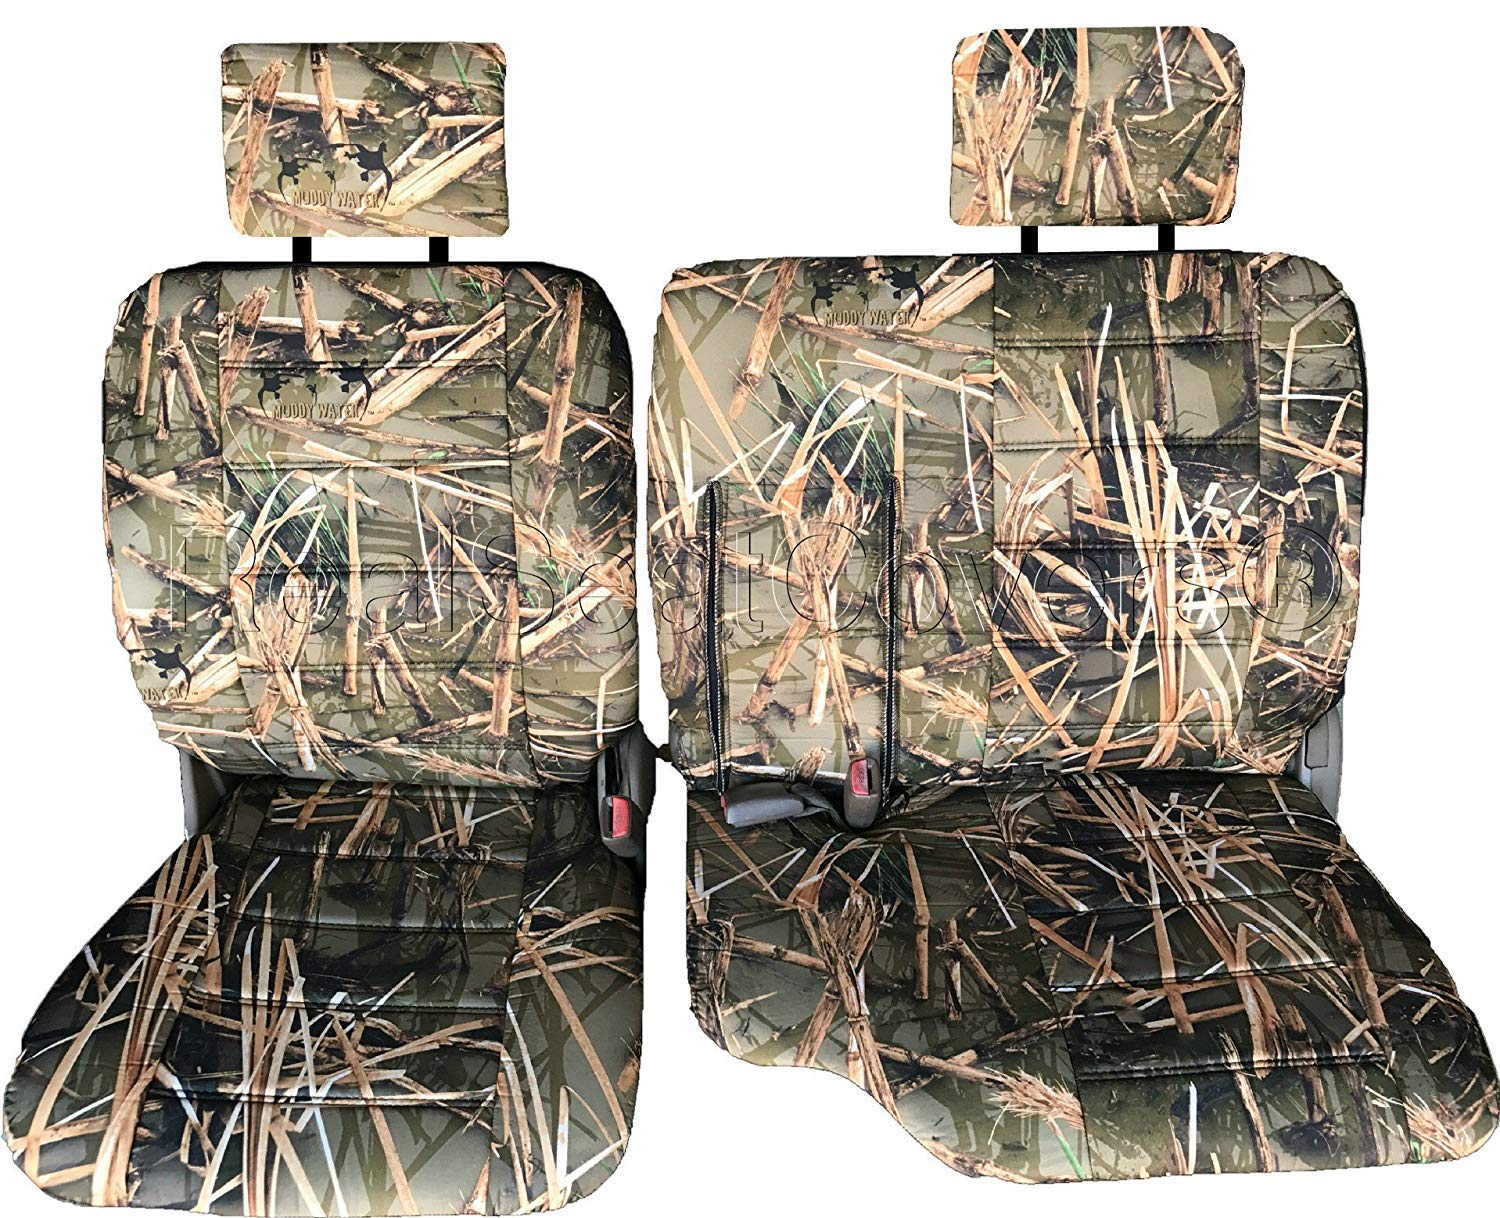 RealSeatCovers for Front 60/40 Split Bench Adjustable Headrest Armrest Belt Cutout Custom Made Exact Fit Seat Cover for Toyota Tacoma 1995-2000 (Muddy Water Camo)